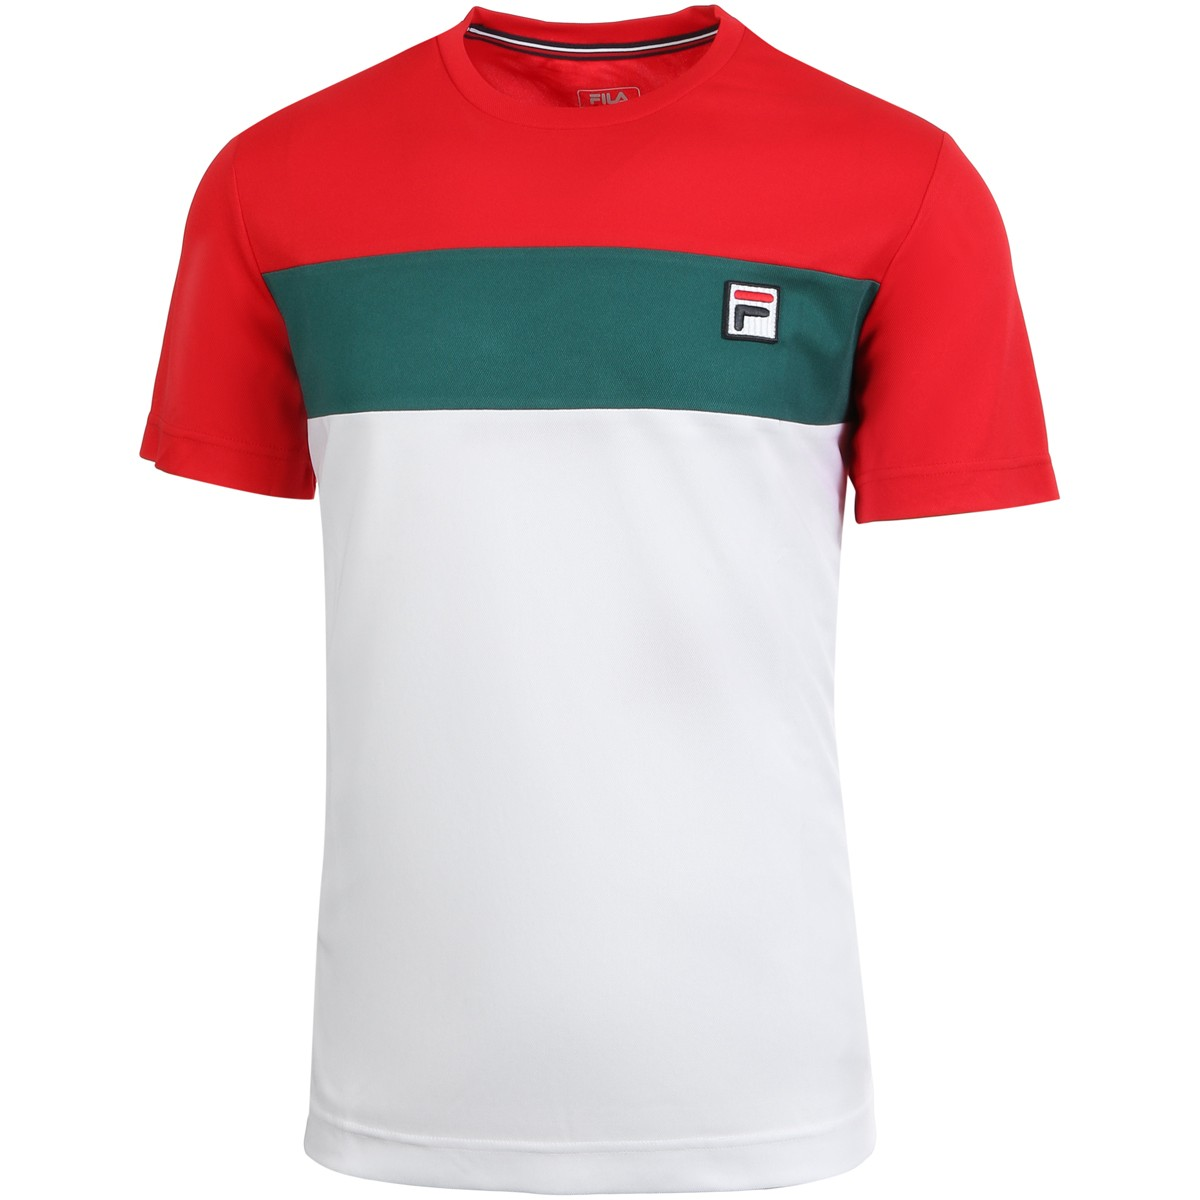 T-SHIRT FILA ATHLETE